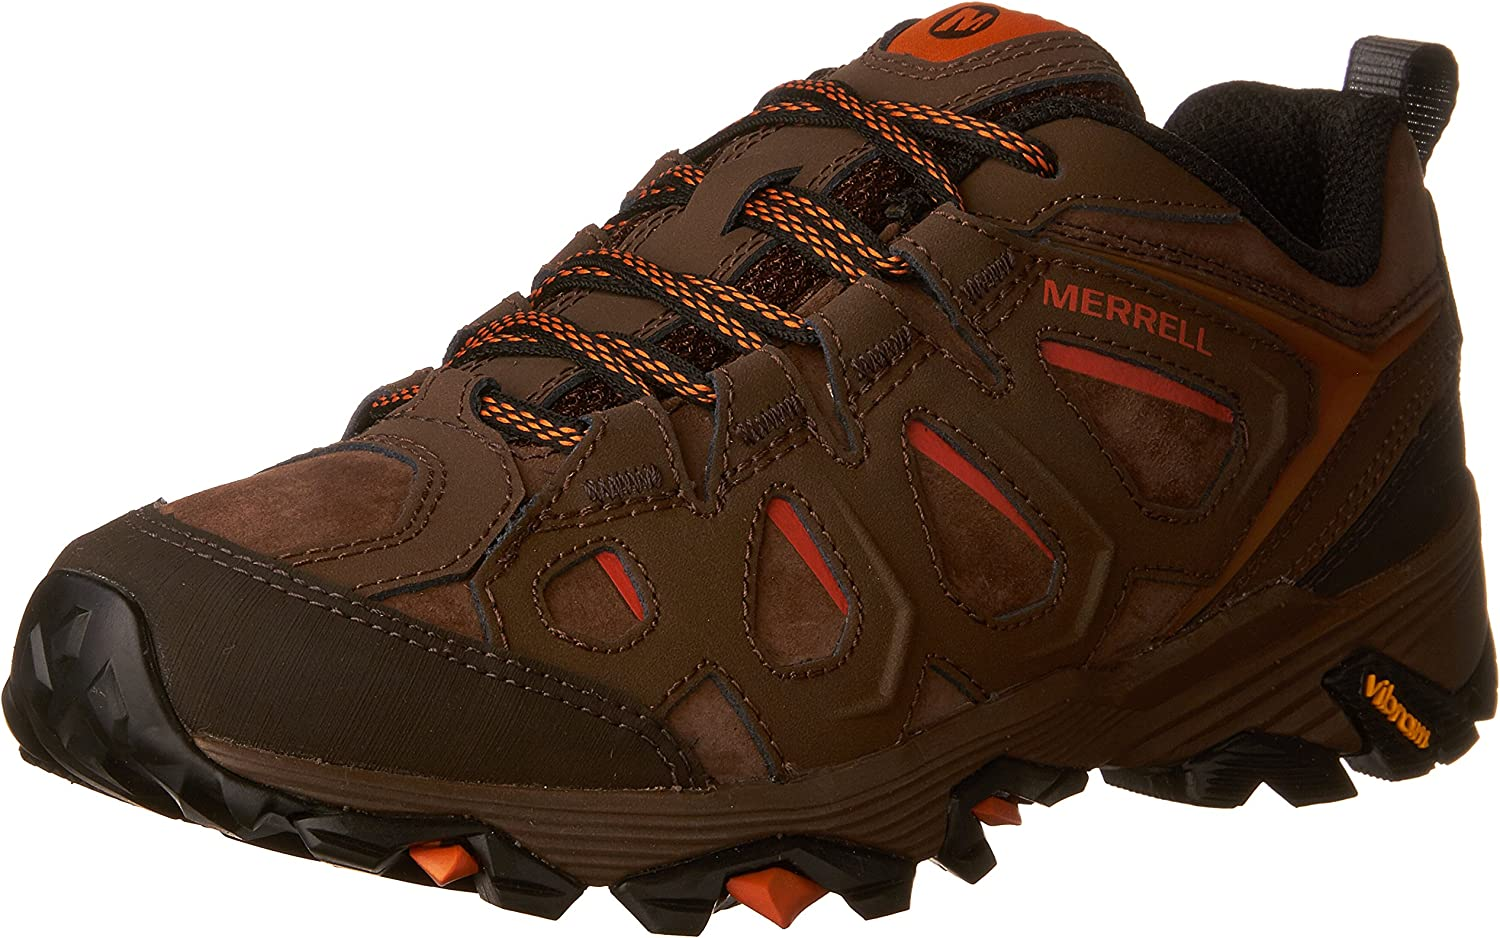 Merrell Mens J37515W Hiking Boots